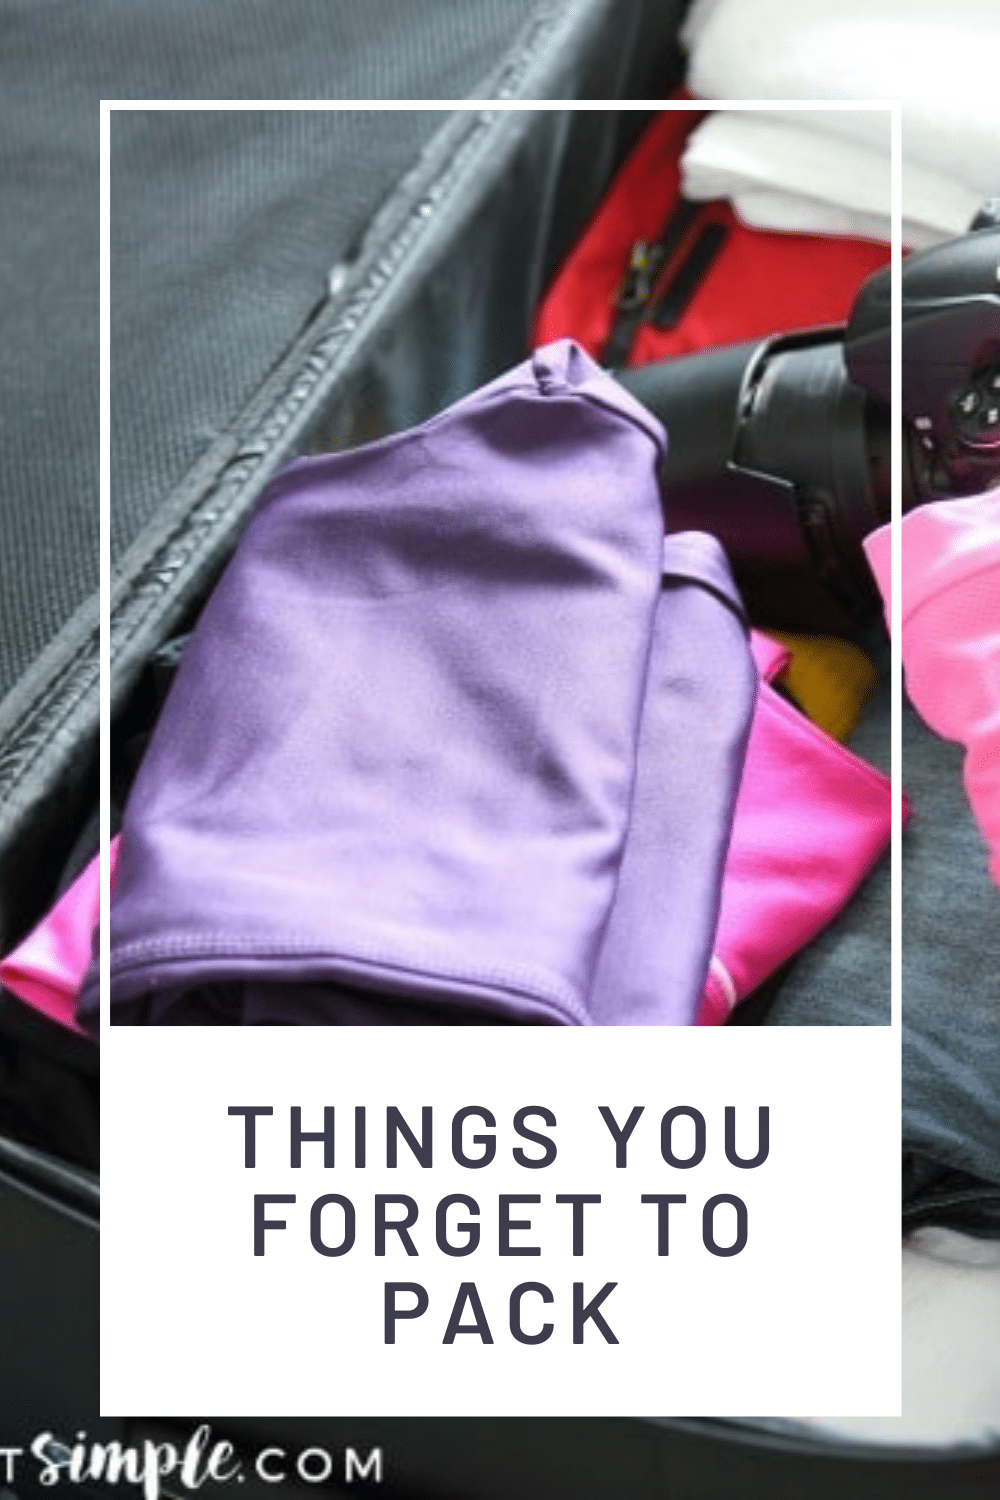 Don't you hat going on vacation only to realize you forgot something? With this list of ideas, you'll never have that problem again. From trash bags to duct tape, a power strip and more! Here is a list of things to pack in your suitcase that could save you some time and sanity on your next vacation! Now you can rest assured that you'll have everything you'll need for your next vacation. via @somewhatsimple